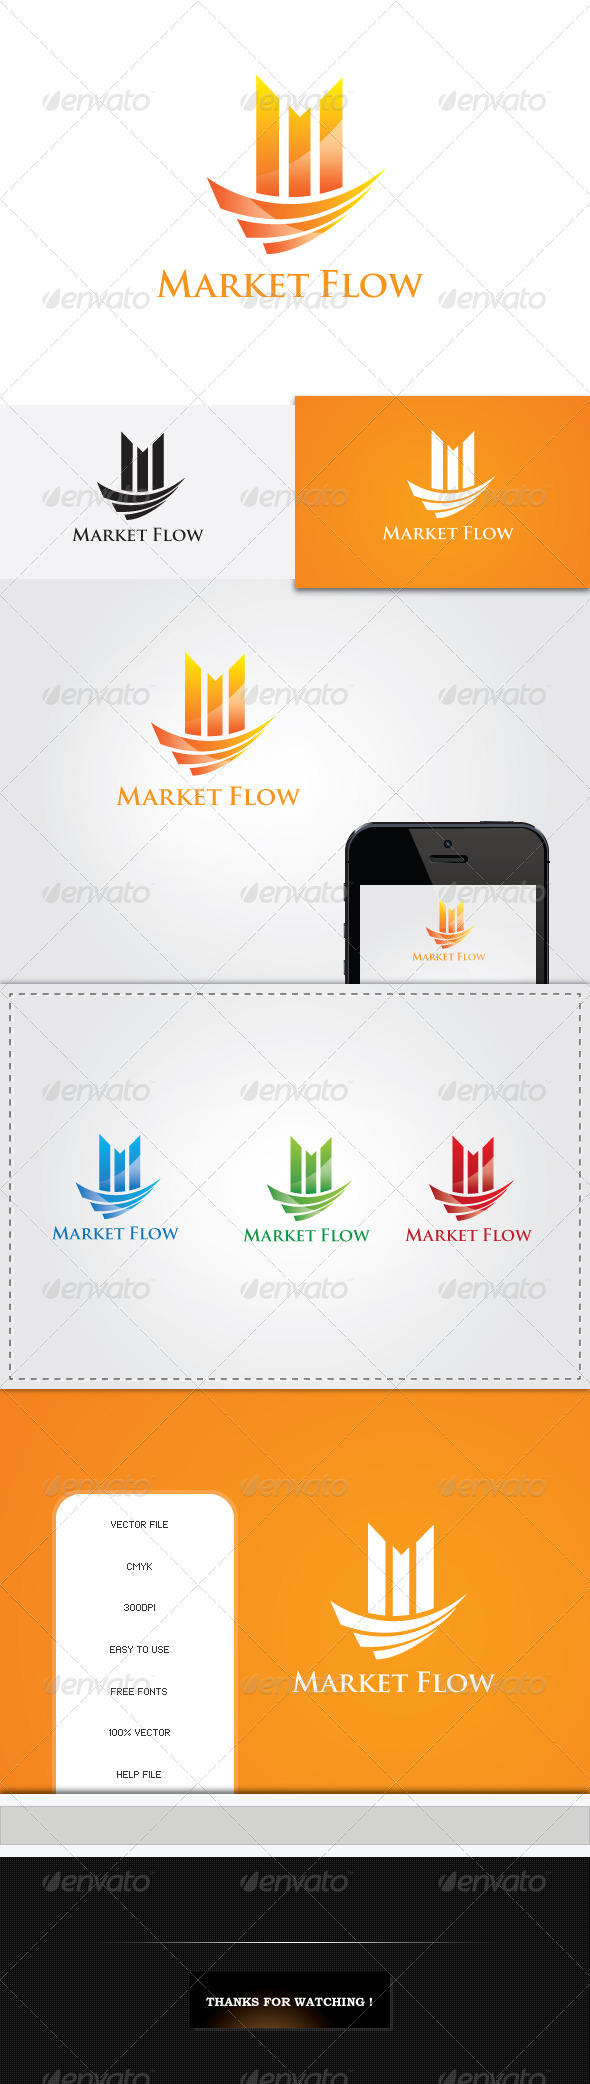 GraphicRiver Market Flow Logo Template 5425155